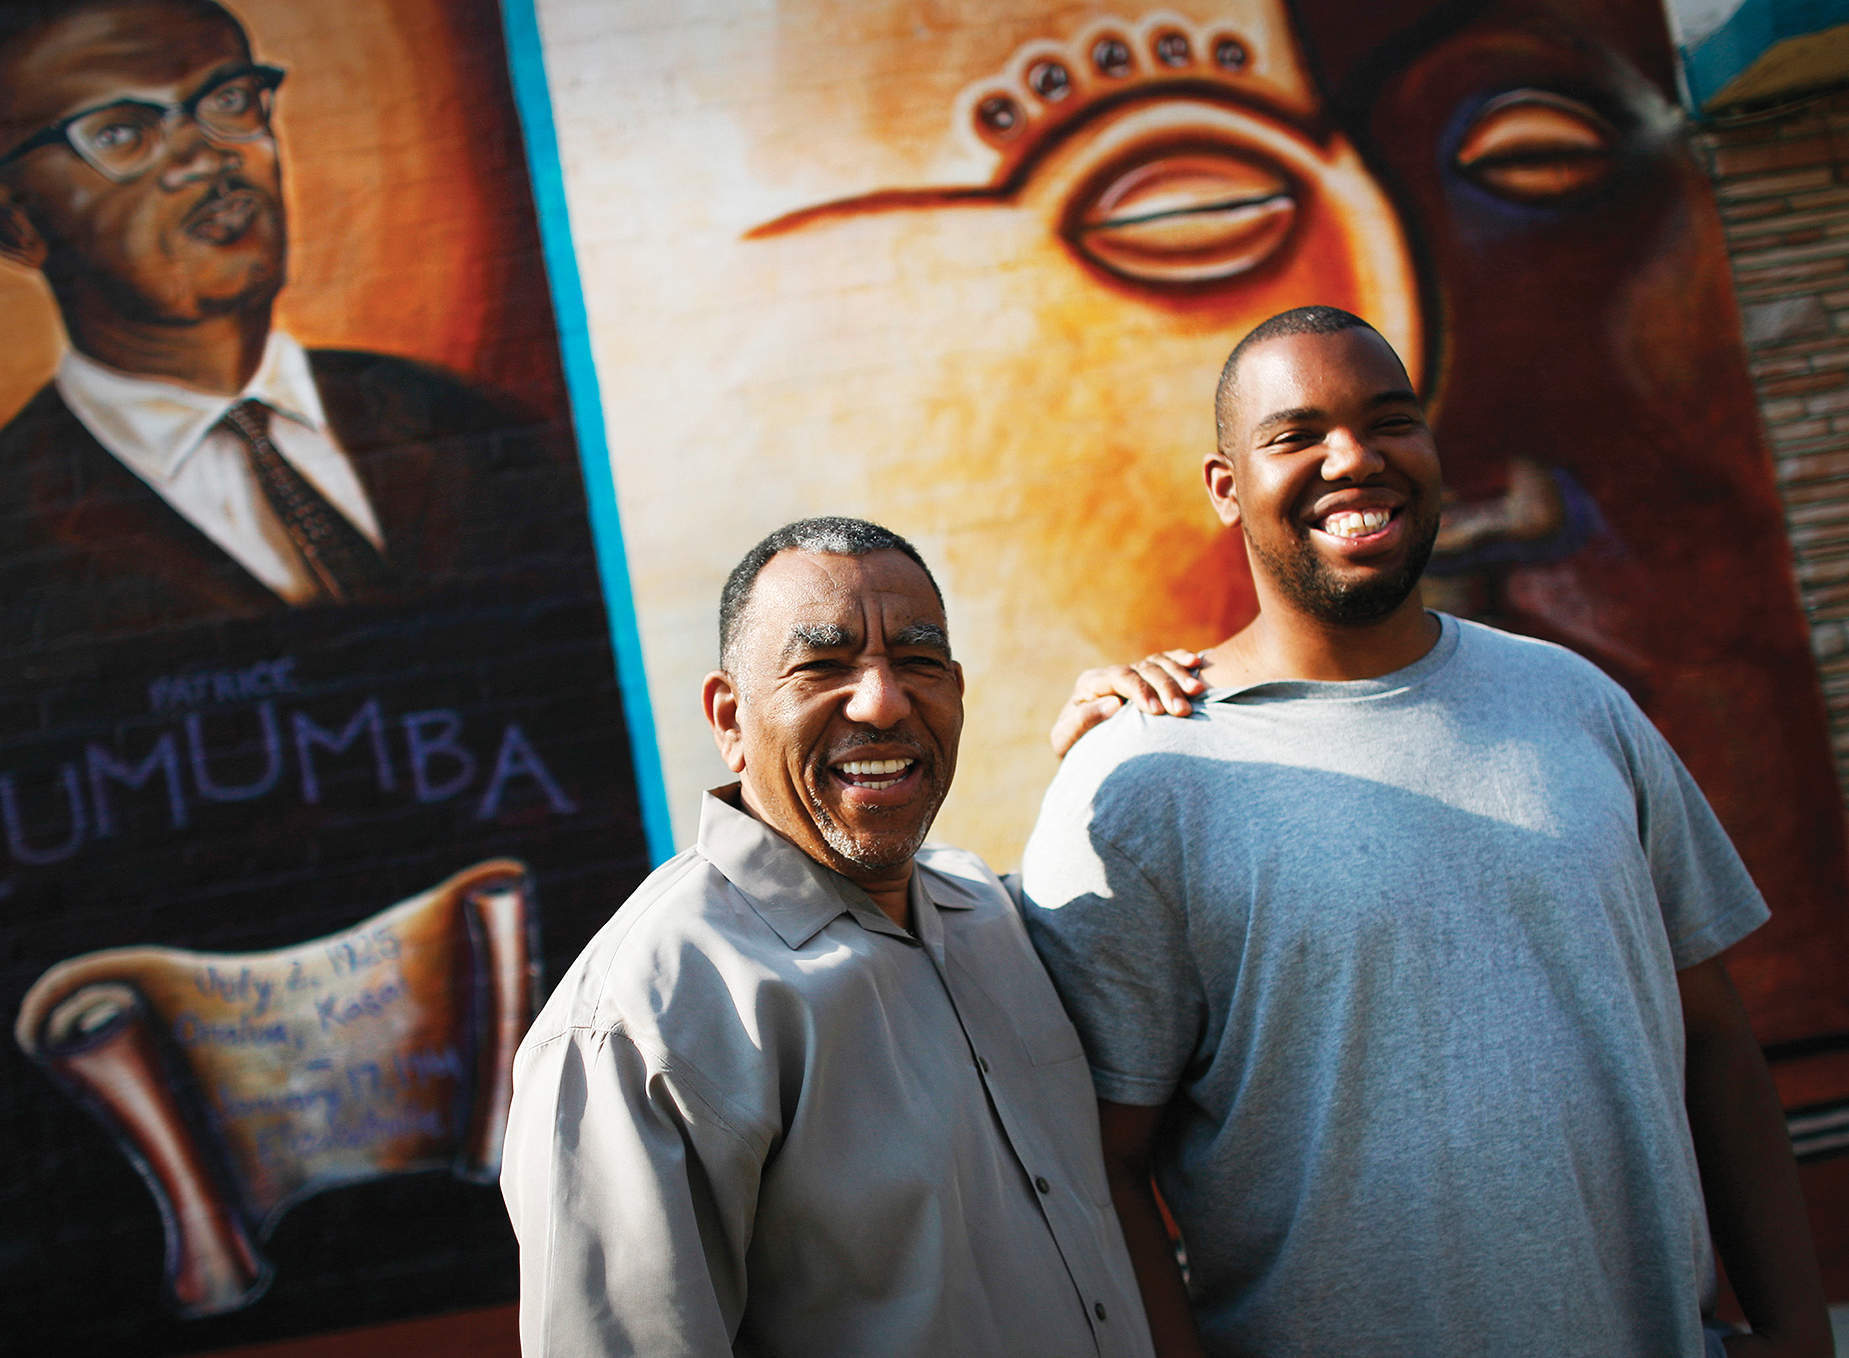 Ta-Nehisi Coates and writing about race in America